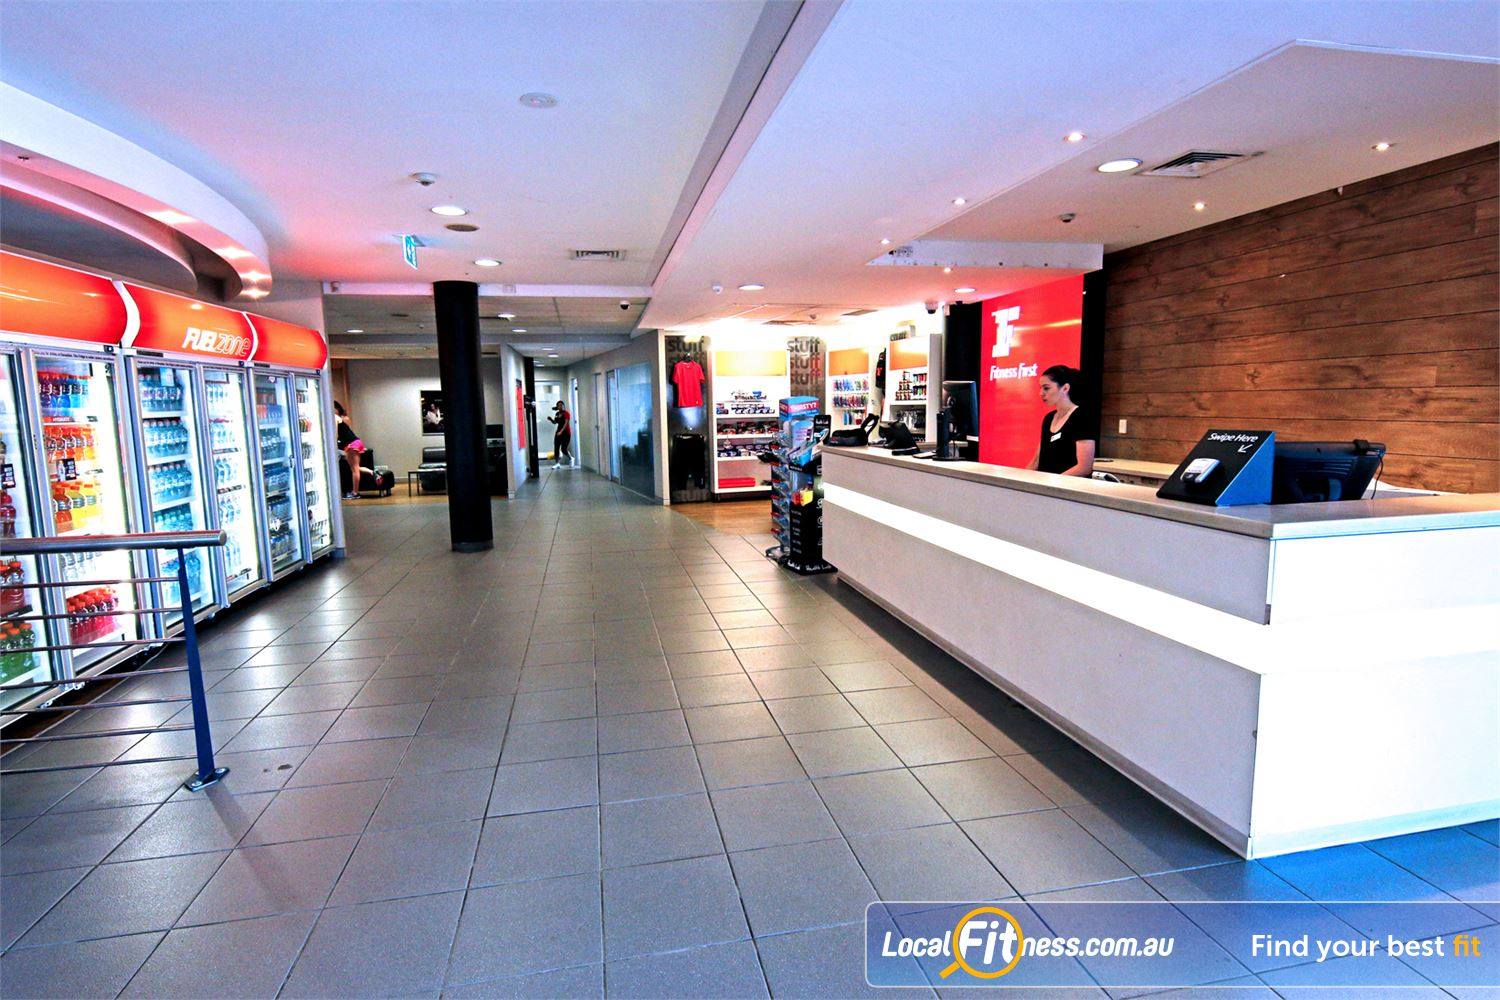 Fitness First Lutwyche Our Fitness First Lutwyche staff are ready to help you on your fitness journey.